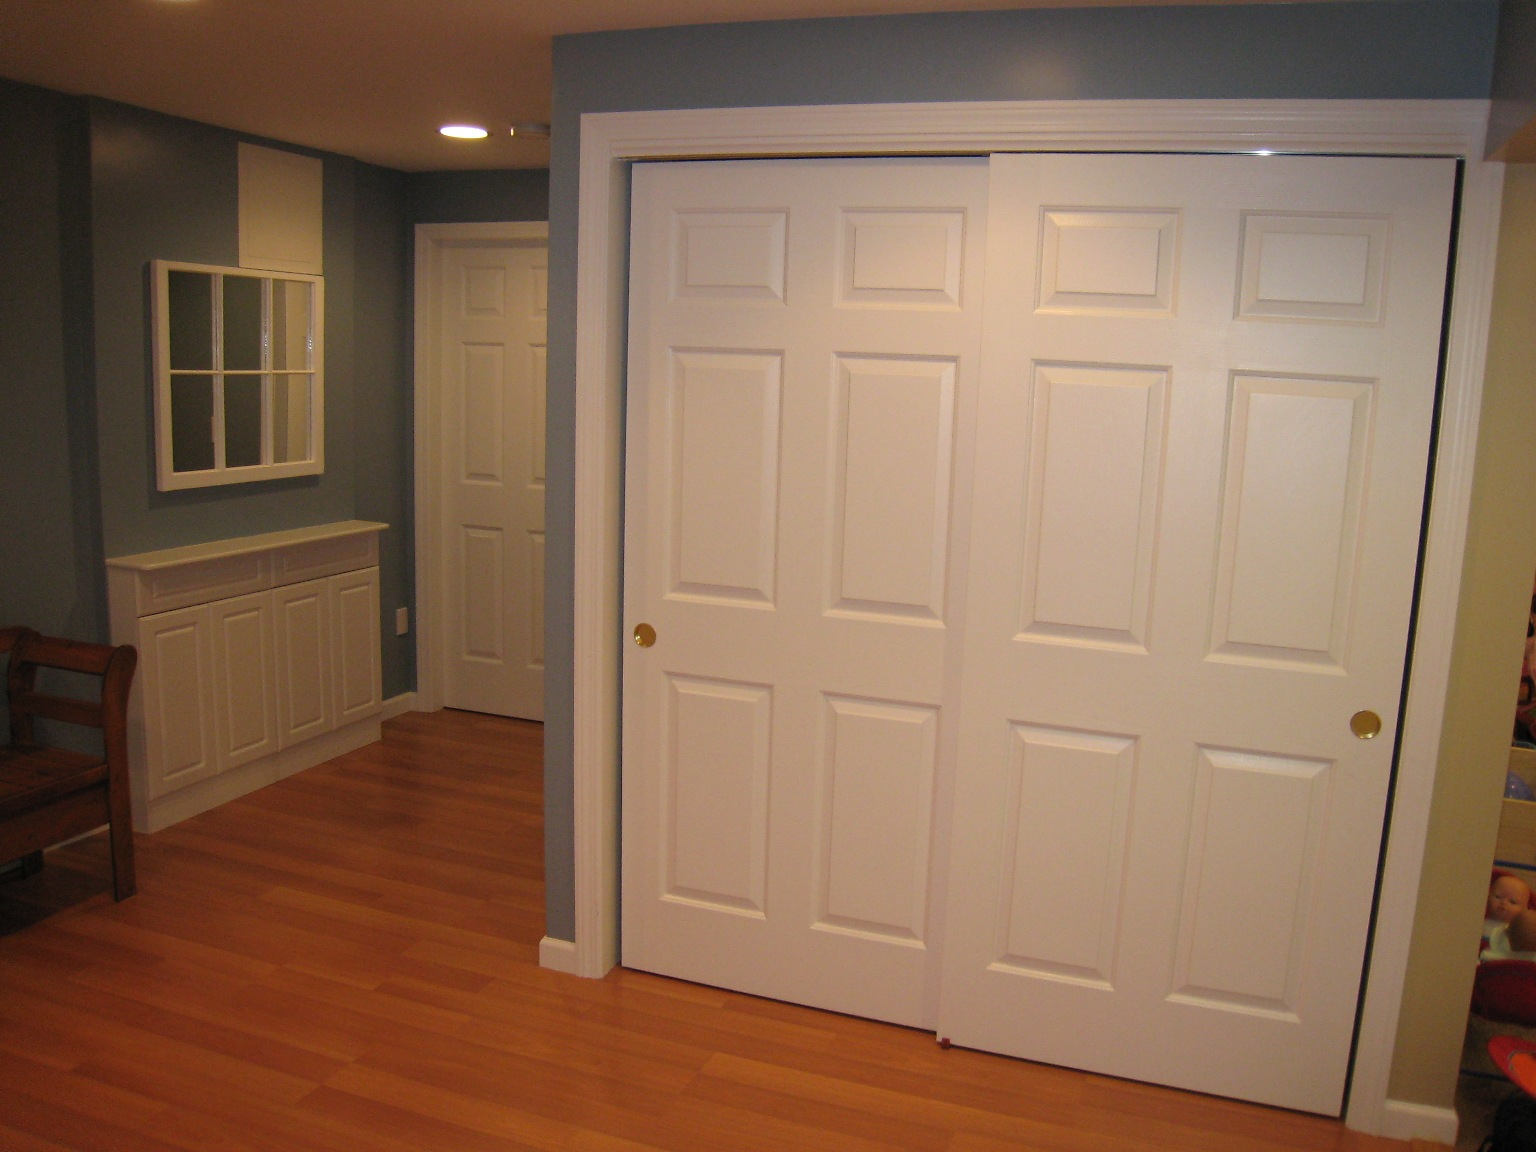 Hanging sliding wooden door is a good choice for closet